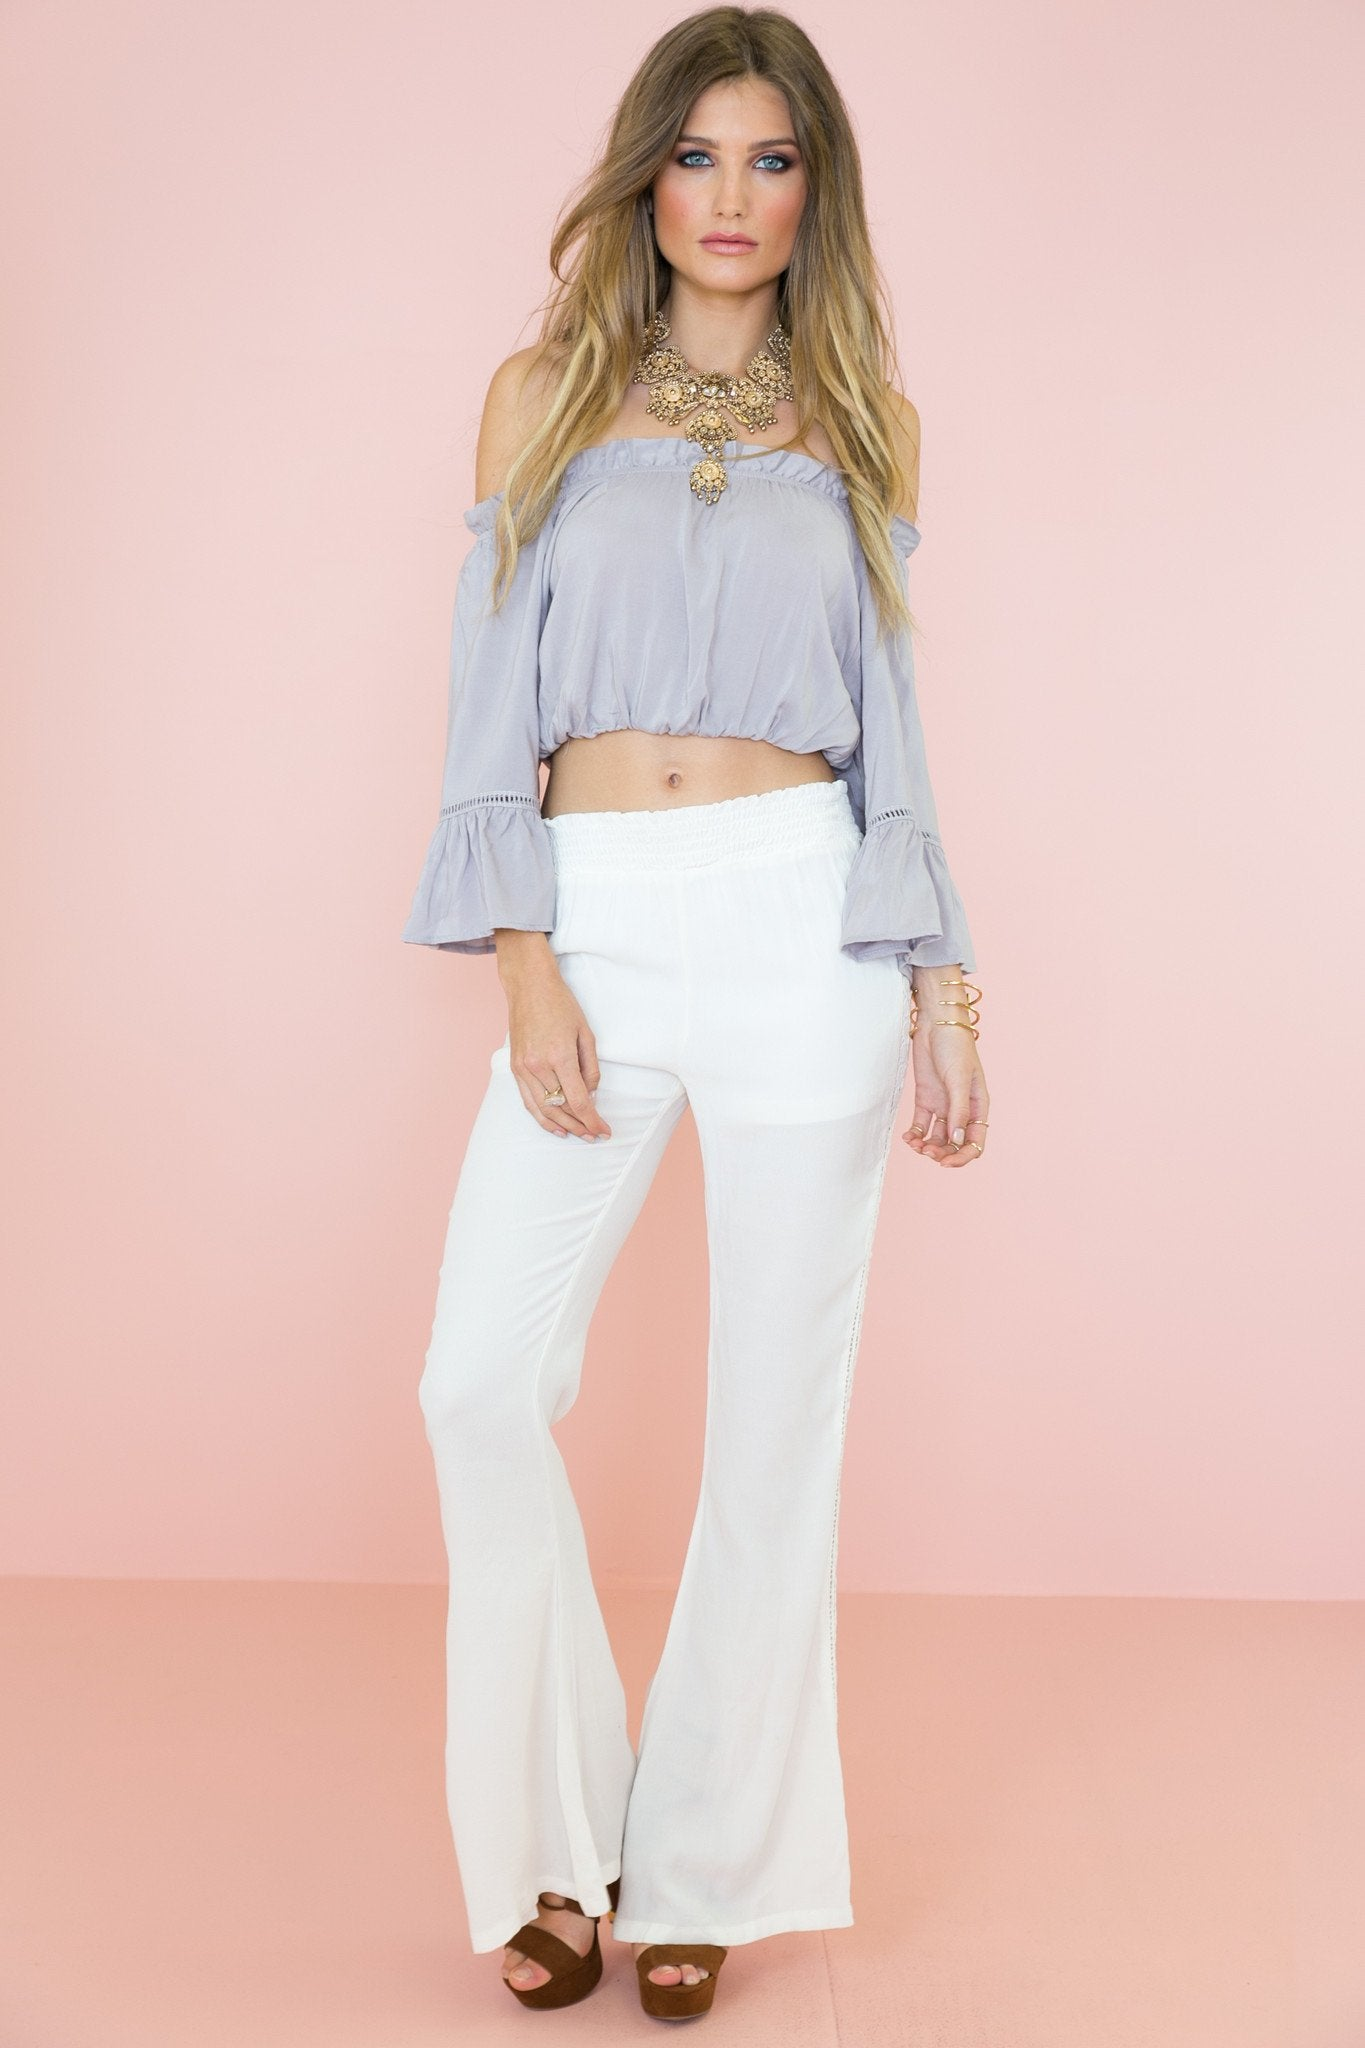 Maddi Lace Contrast Pant /// Only 1-M Left ///